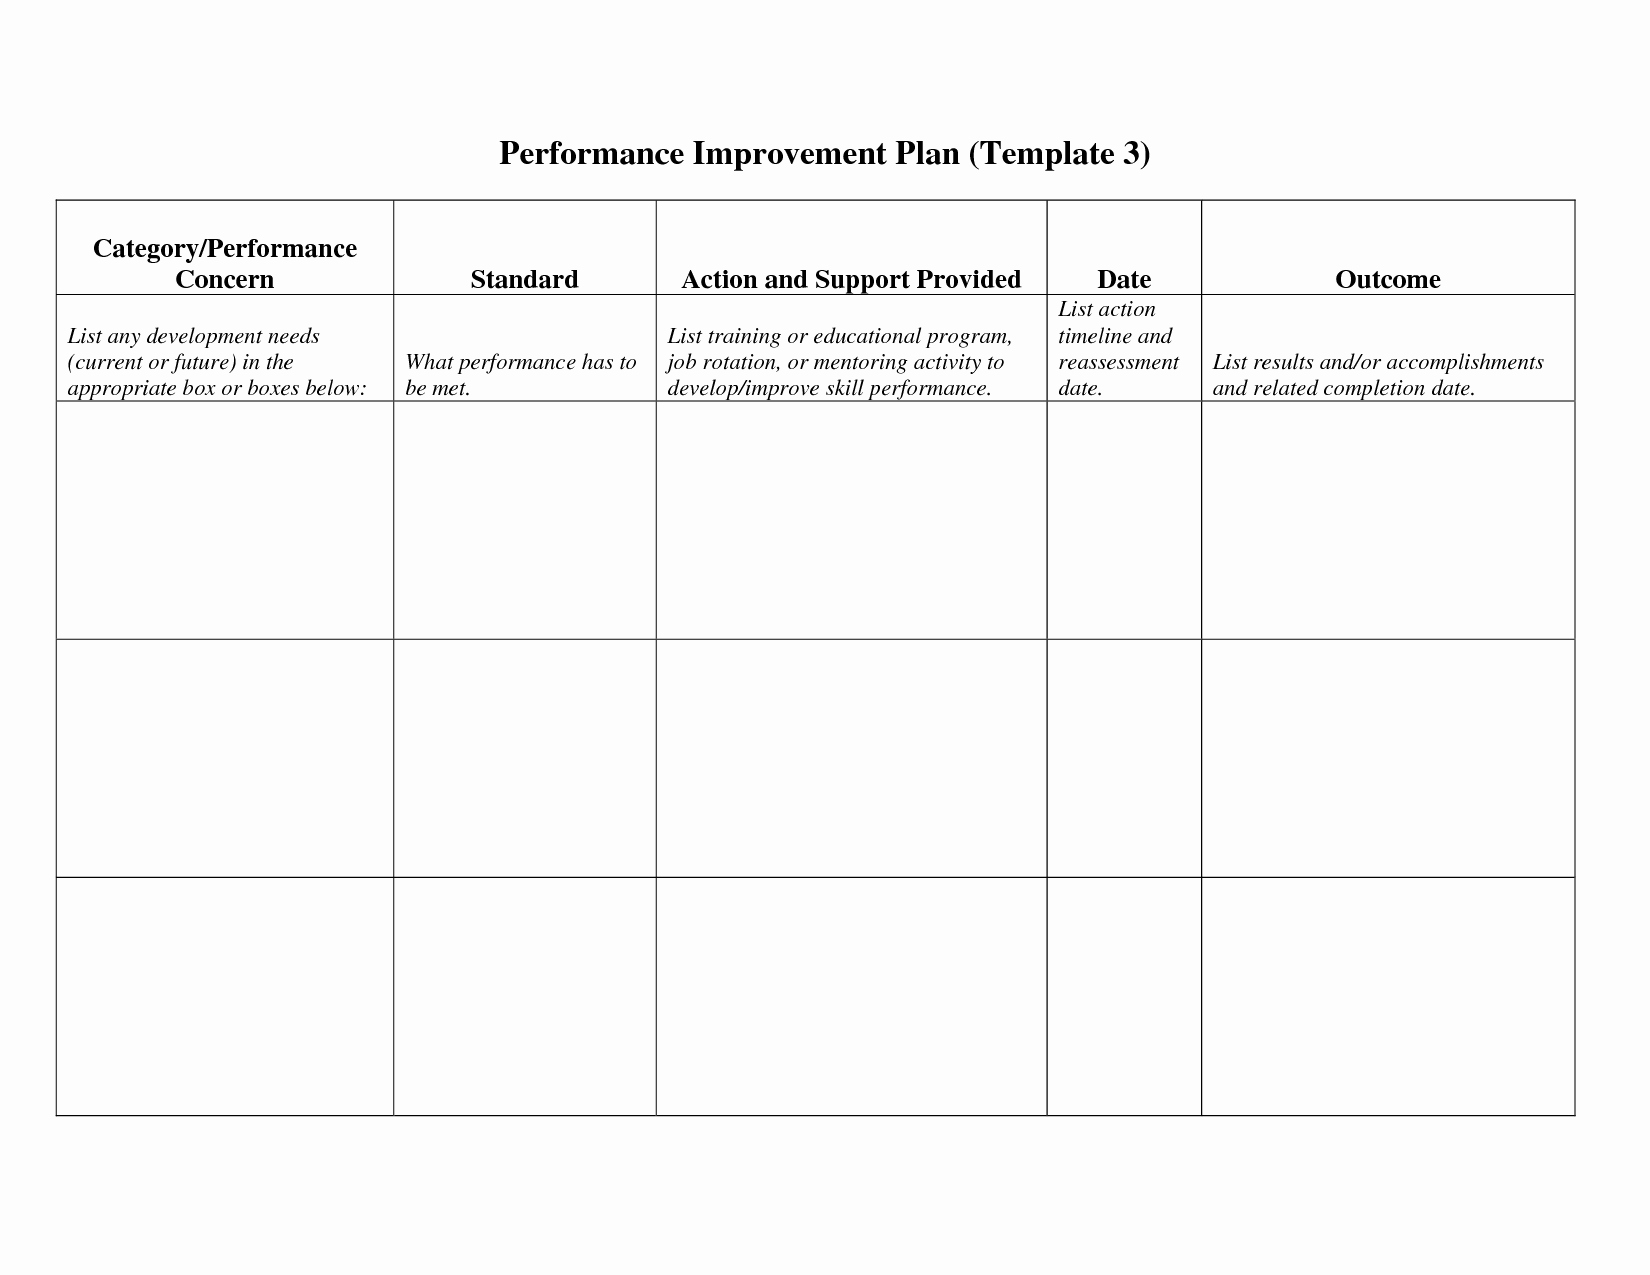 Performance Action Plan Template Best Of Excellent Employee Work Plan Template Ms Word V M D